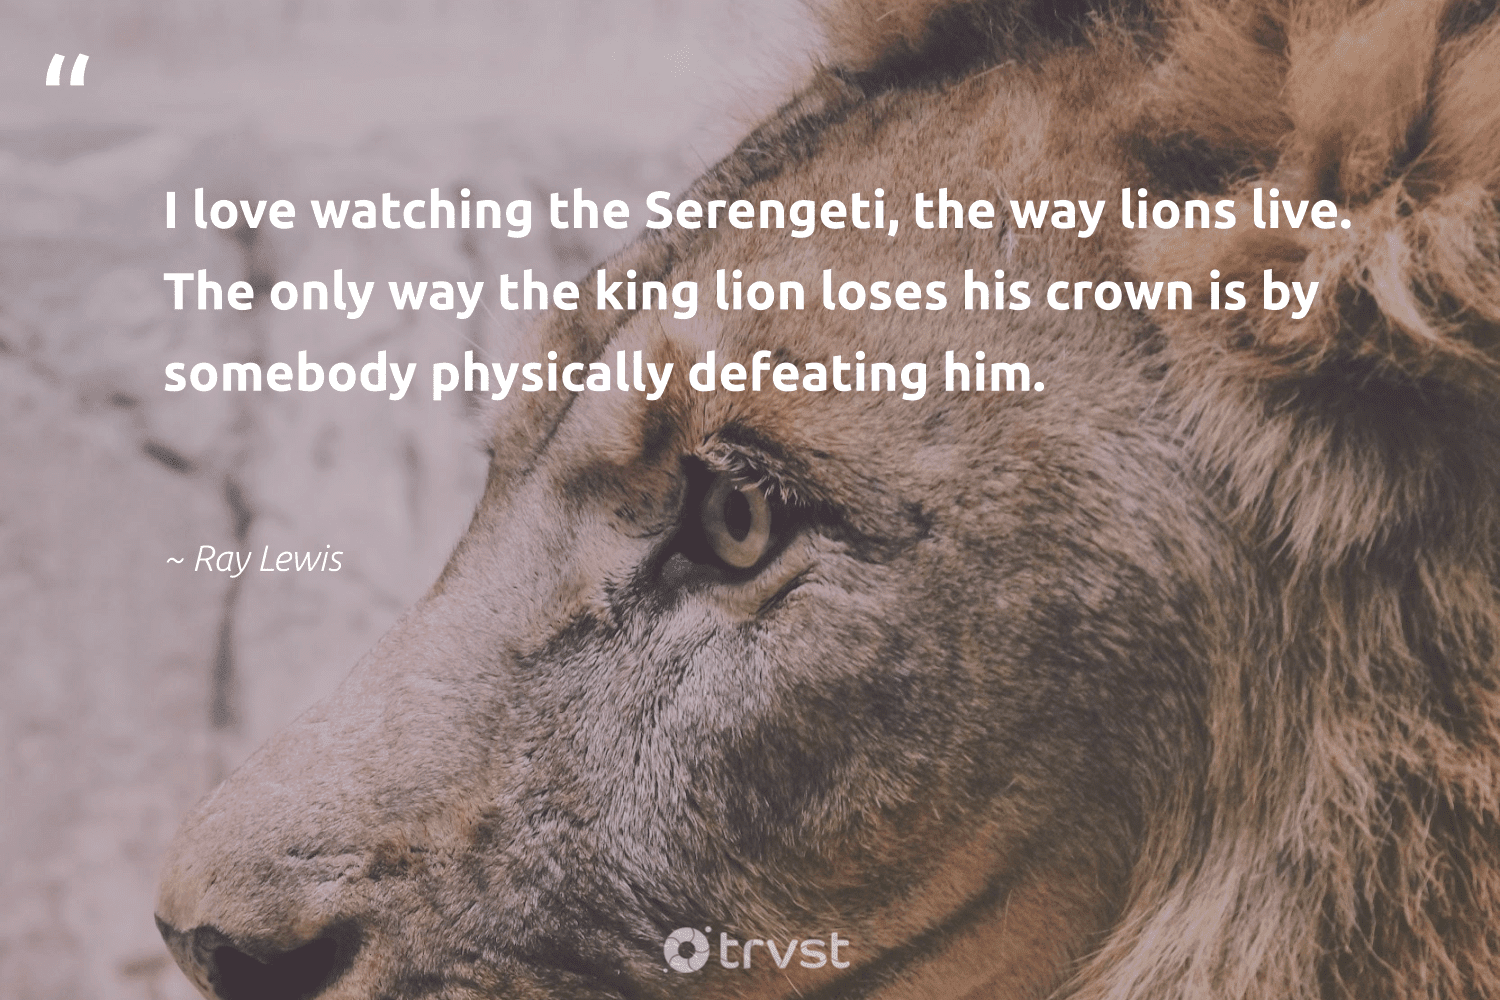 """""""I love watching the Serengeti, the way lions live. The only way the king lion loses his crown is by somebody physically defeating him.""""  - Ray Lewis #trvst #quotes #love #lion #lions #amazingworld #dogood #conservation #dosomething #perfectnature #takeaction #nature"""